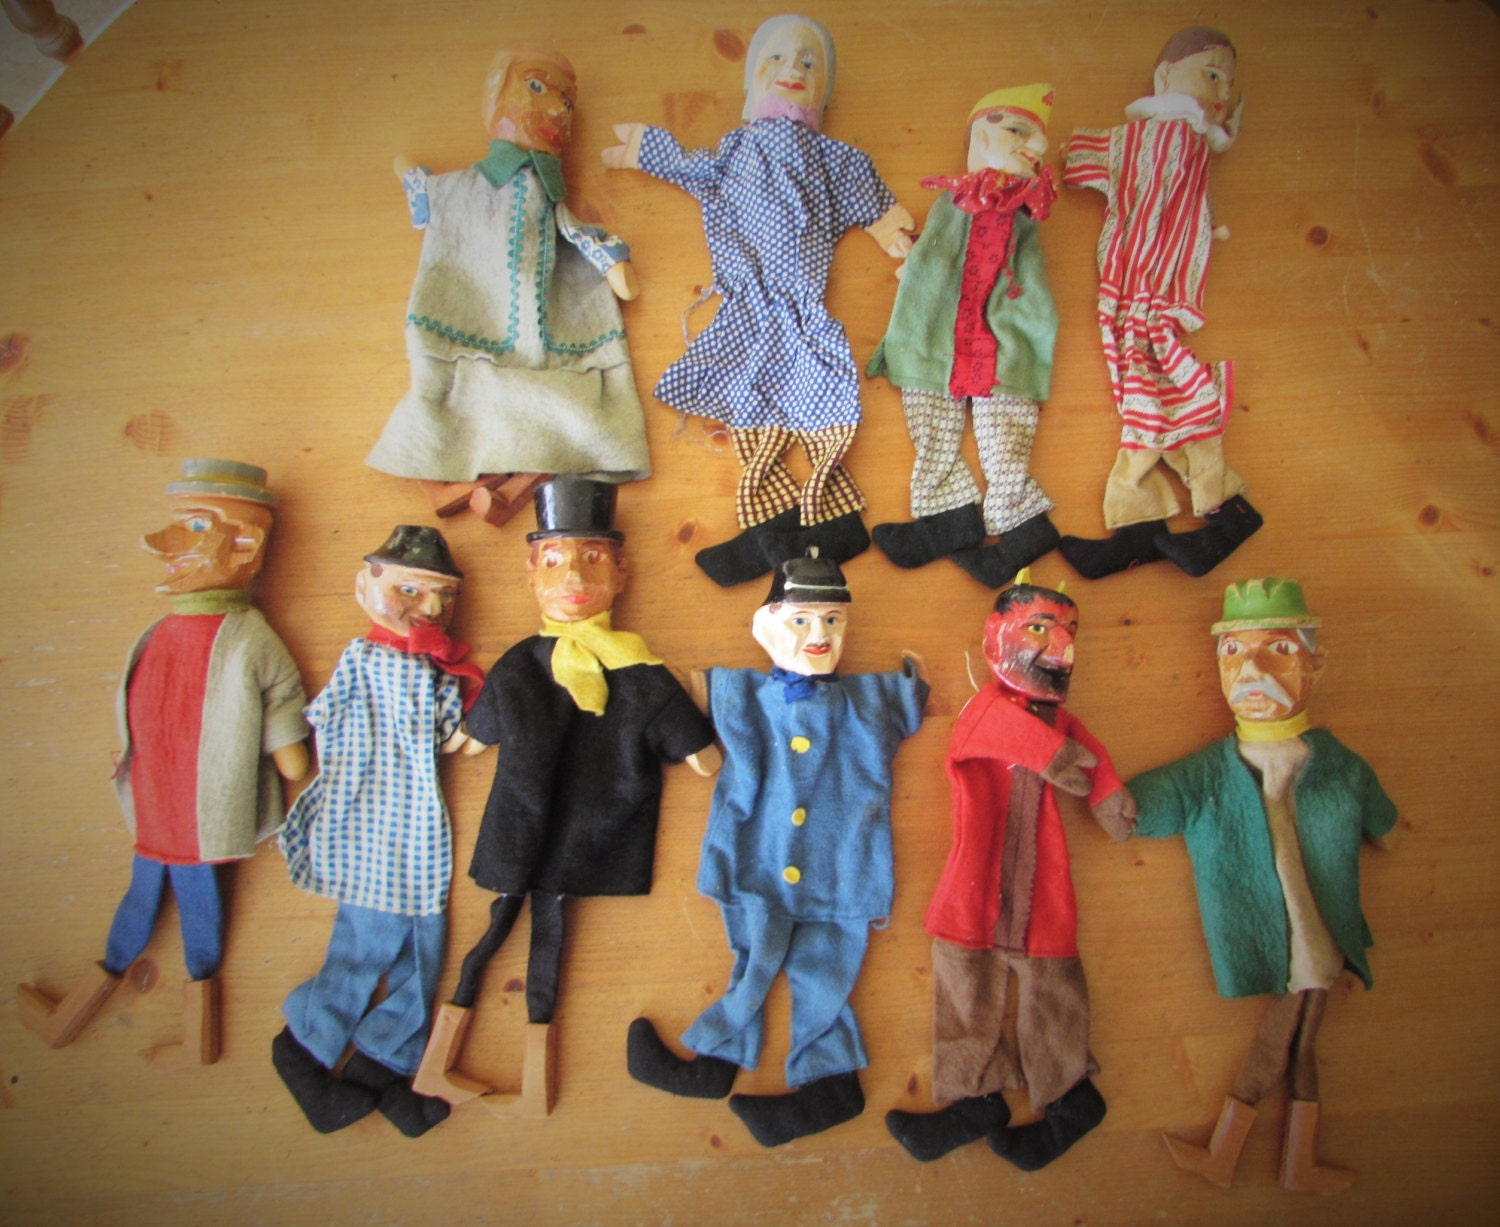 Very Rare Antique German Punch And Judy Wooden Hand Puppets  Made In Germany   MEMsArtShop.